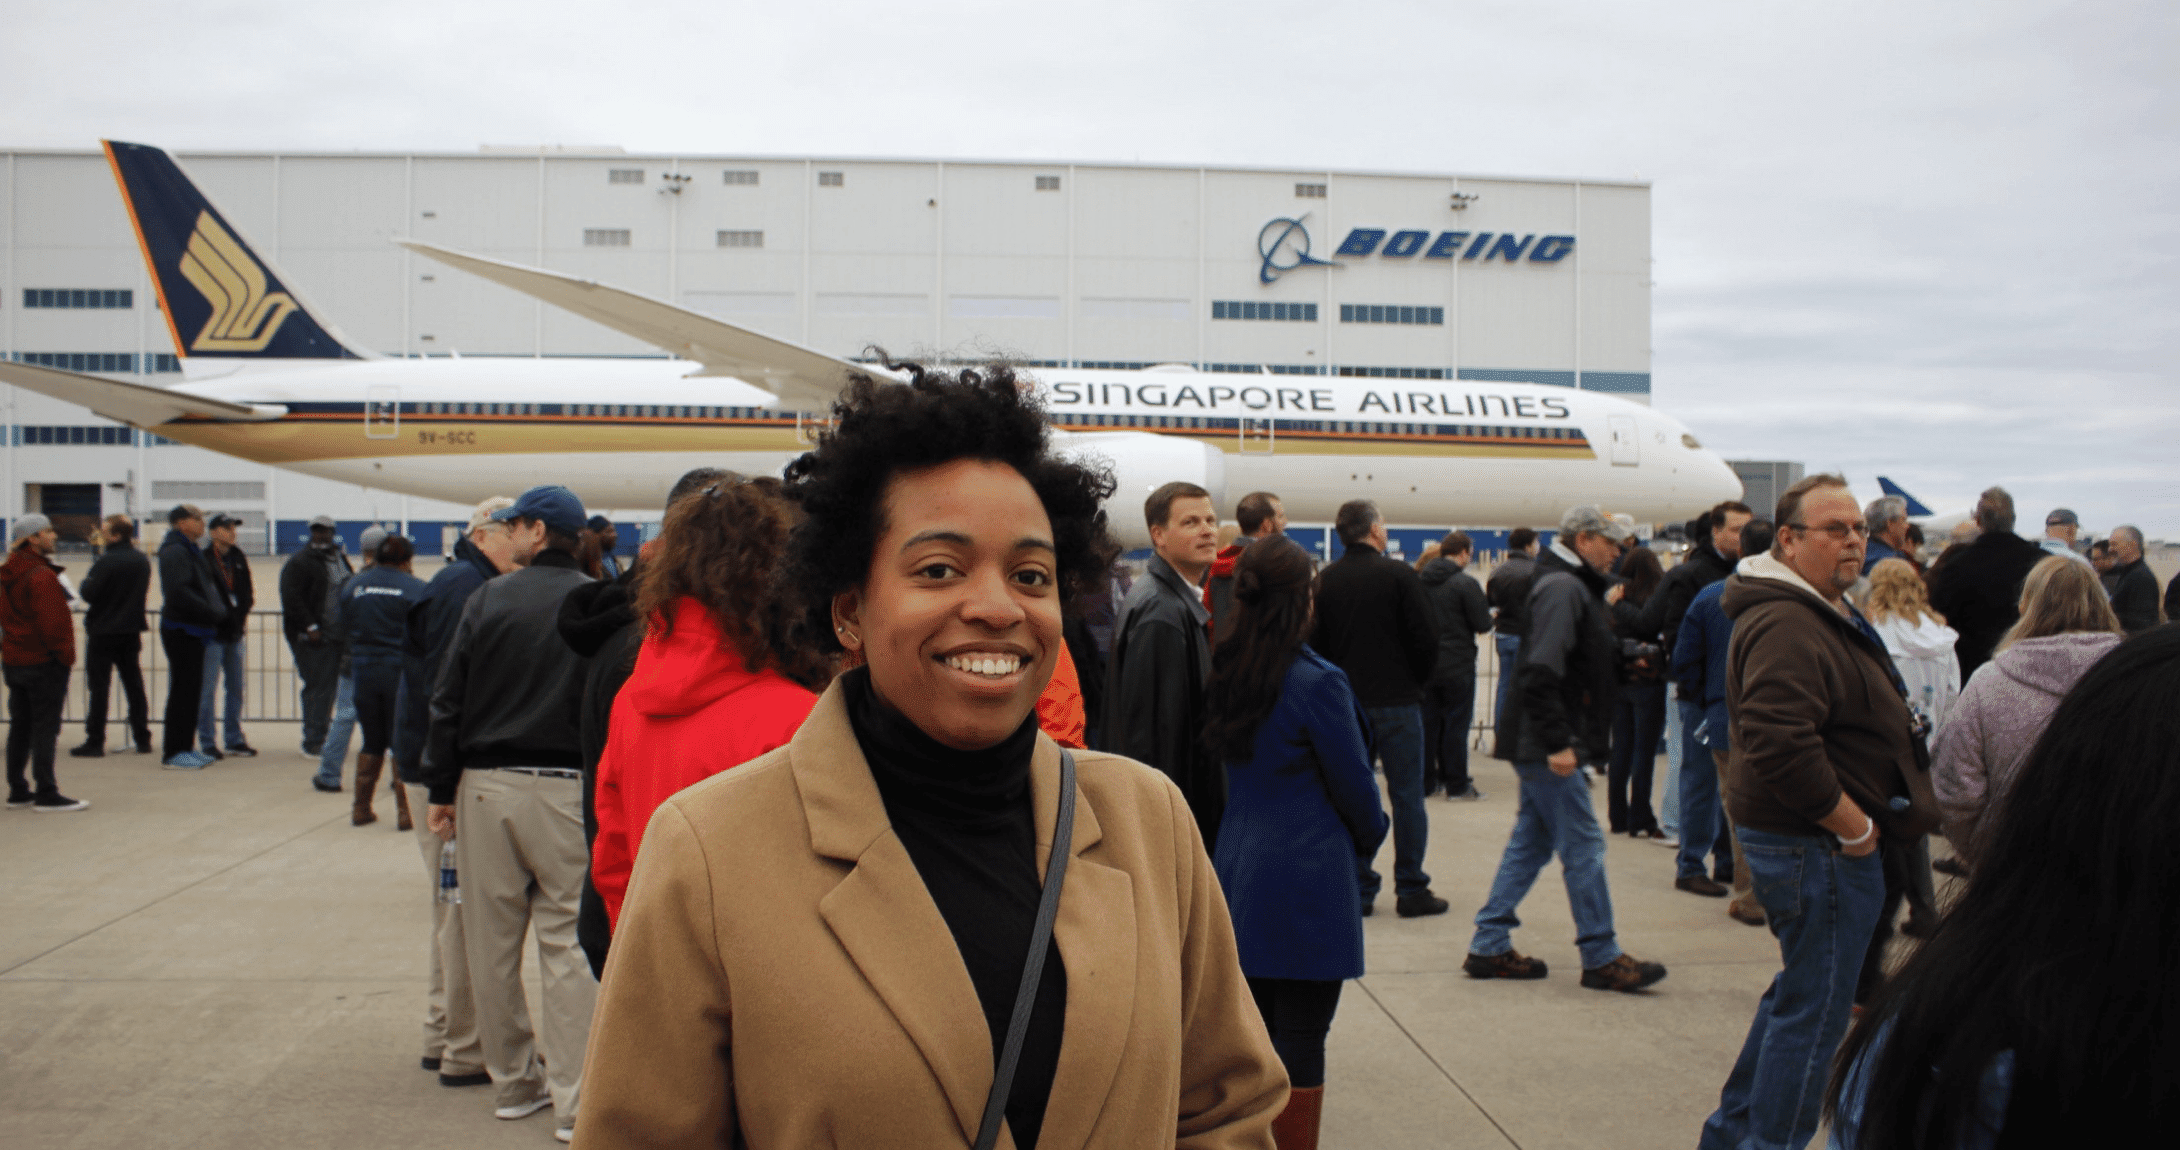 Clarissa Mcmillar smiling in front of Boeing planeoeing